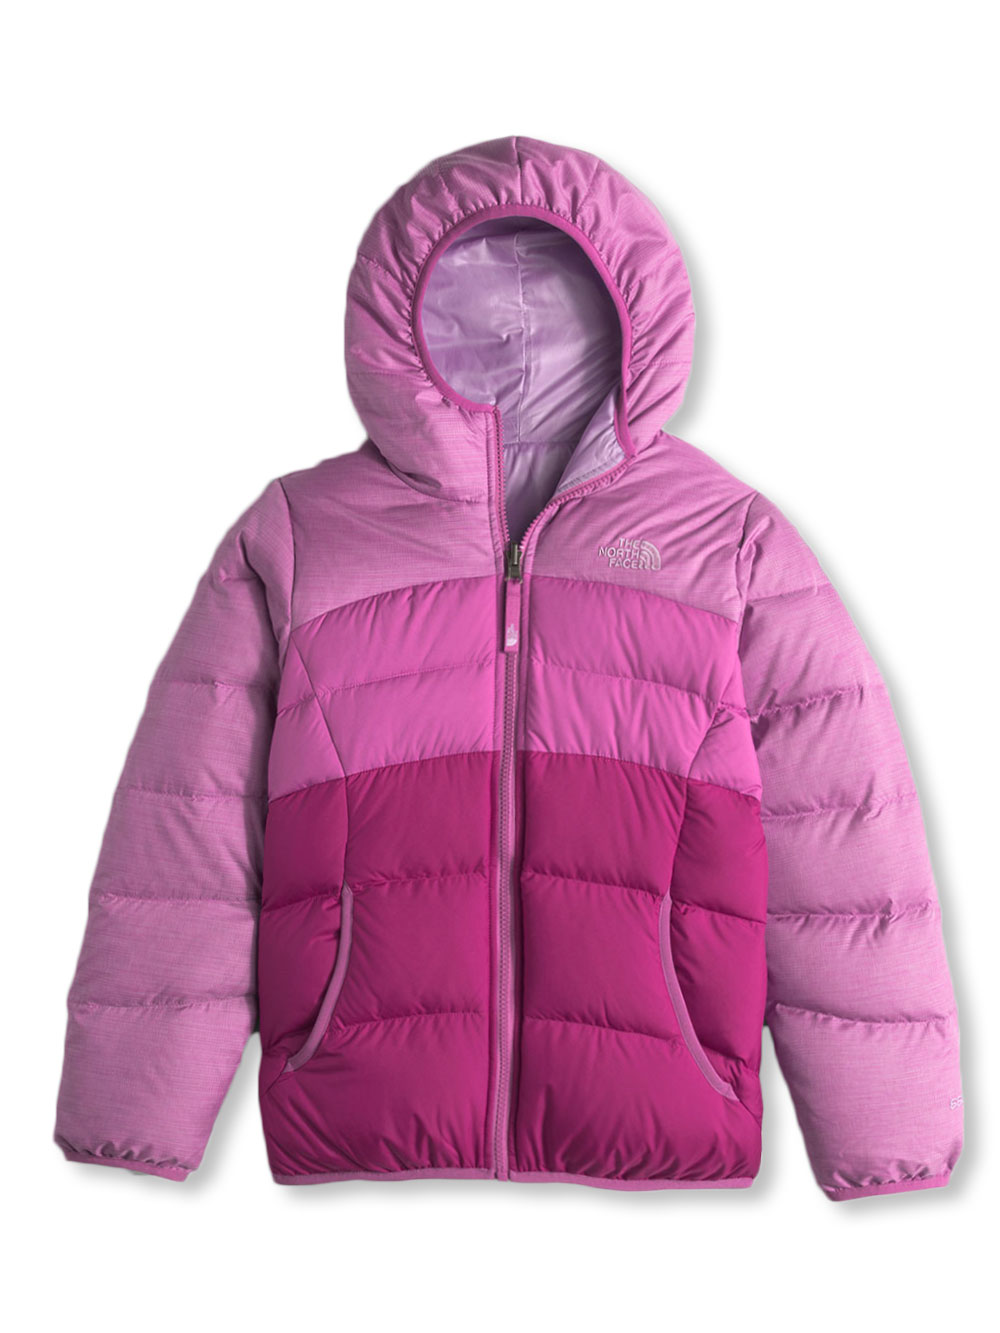 The North Face Big Girls' Reversible Moondoggy Jacket (Sizes 7 - 16) - wisteria purple heather, l/14-16